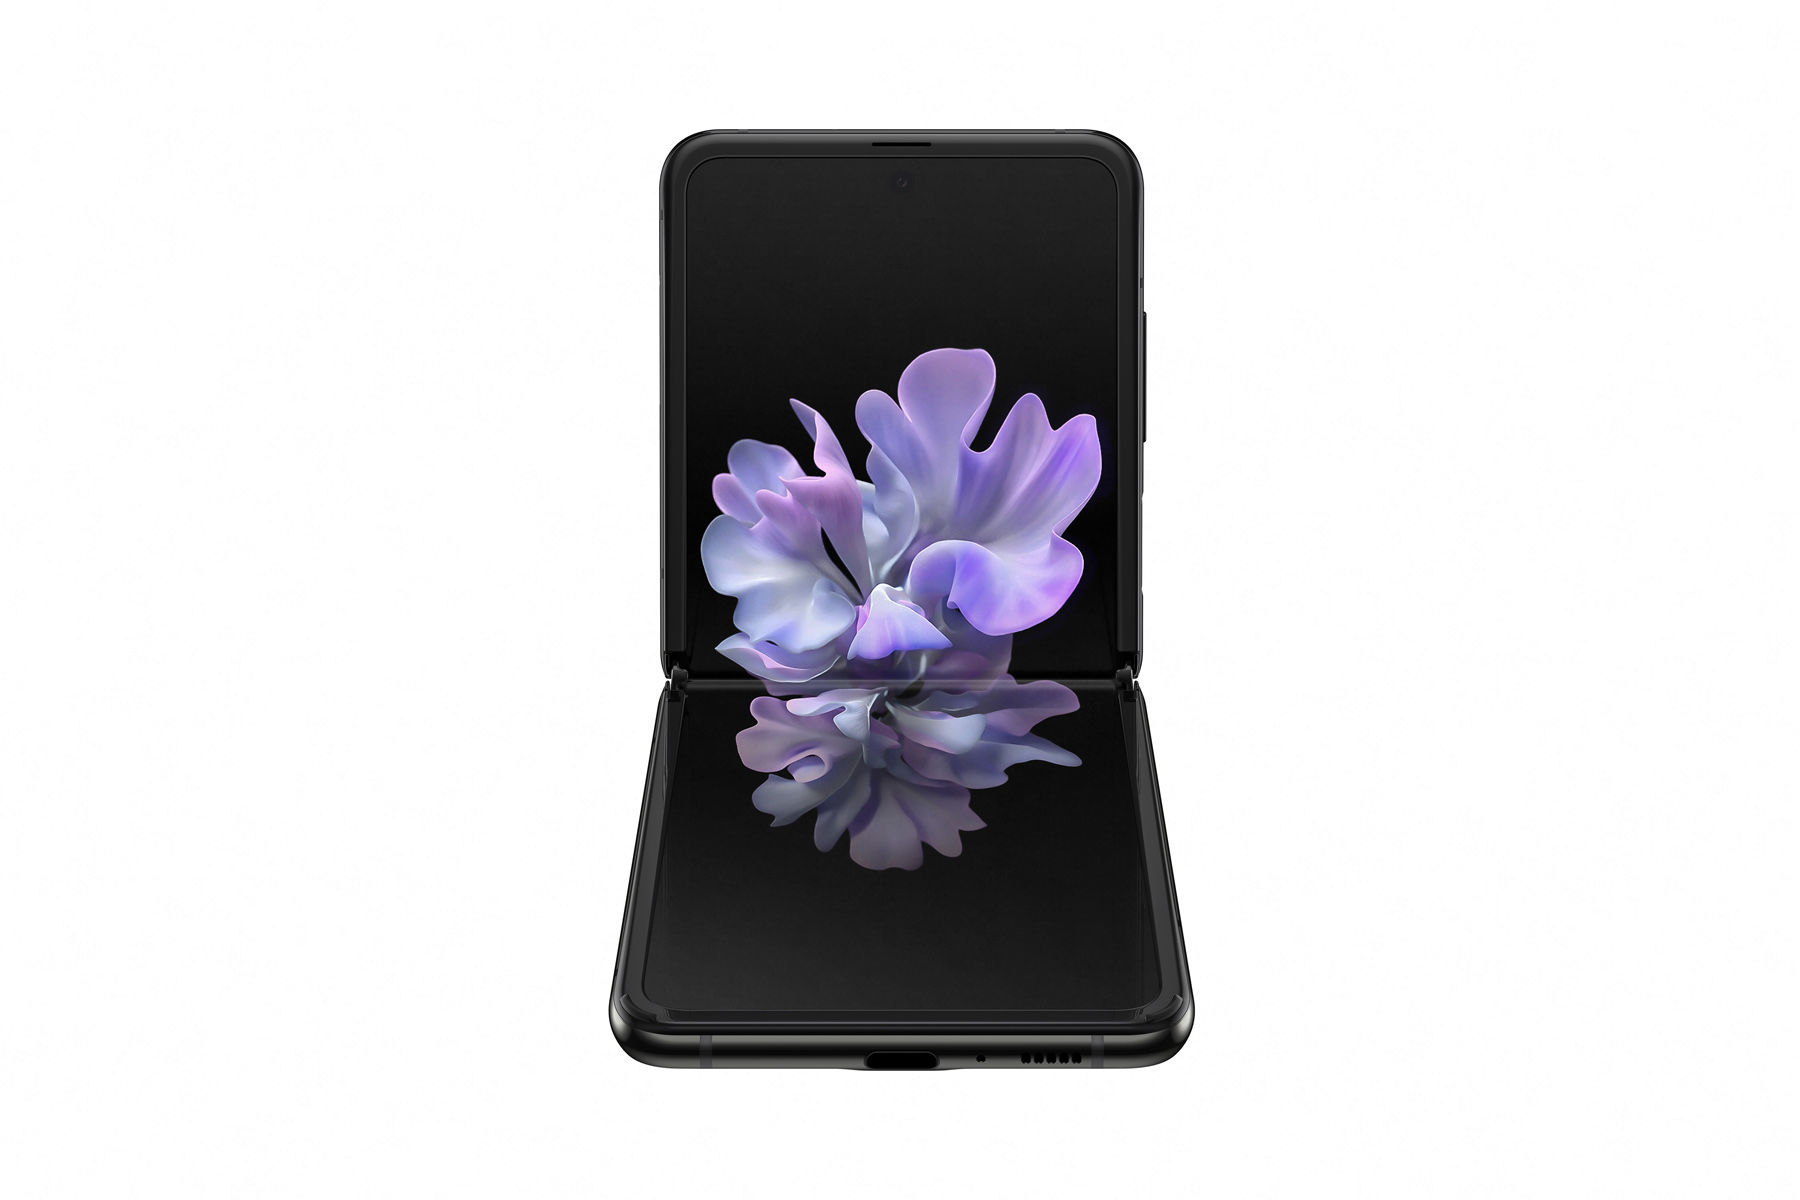 012_galaxyzflip_mirror_black_front_table_top.jpg